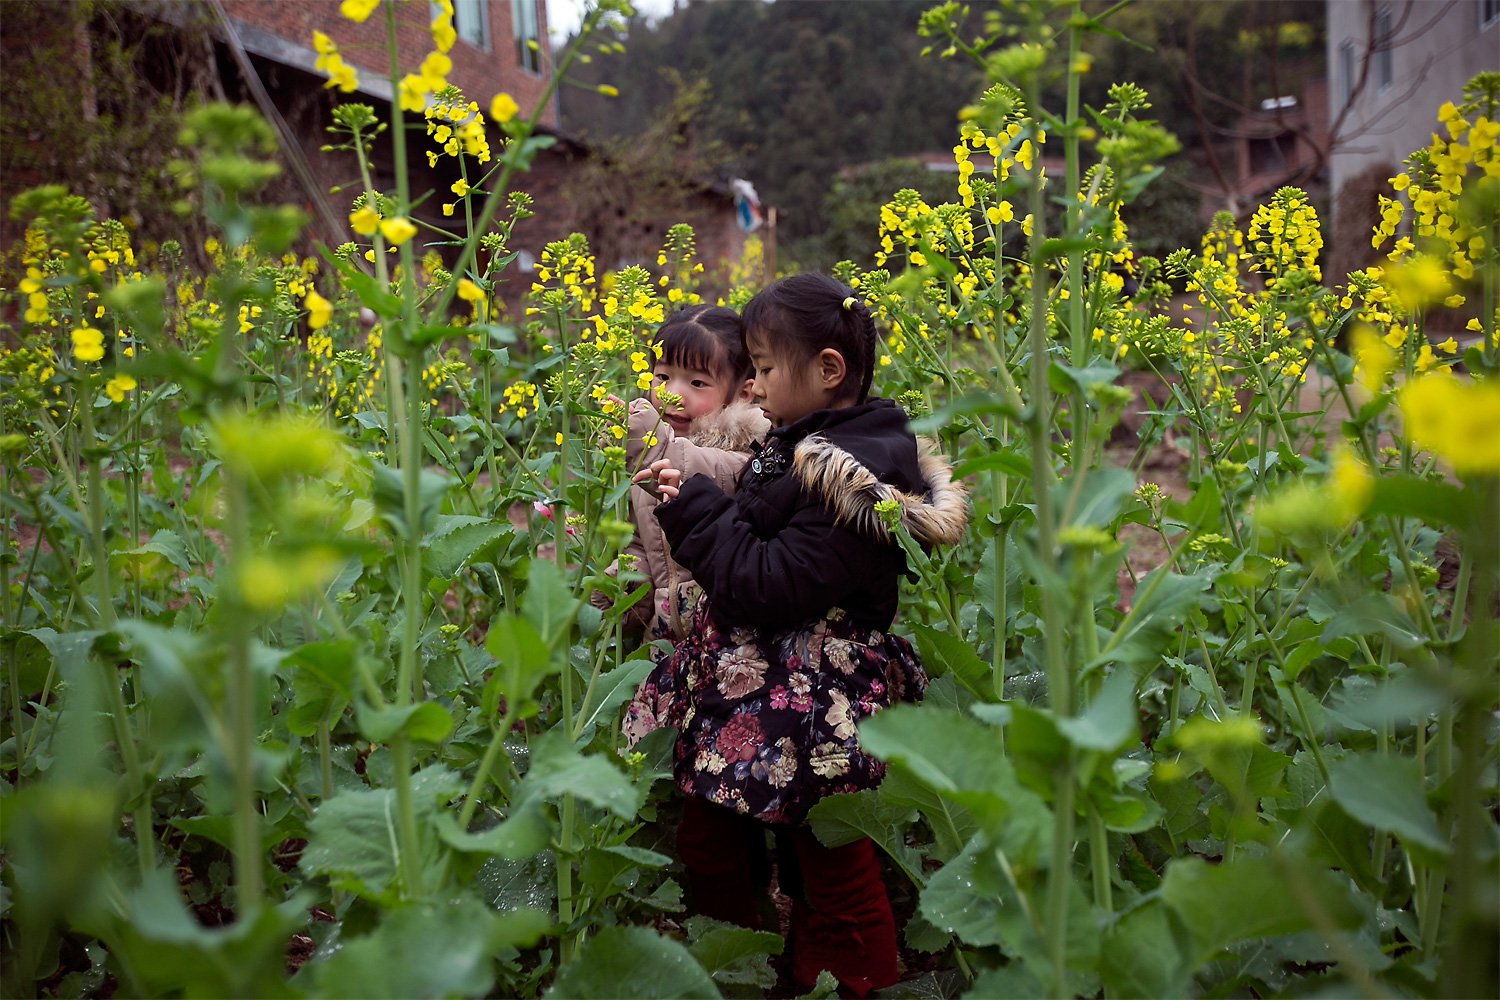 Siyao and Mengmeng play in a rapeseed field, in Longjing village, March 5, 2015.